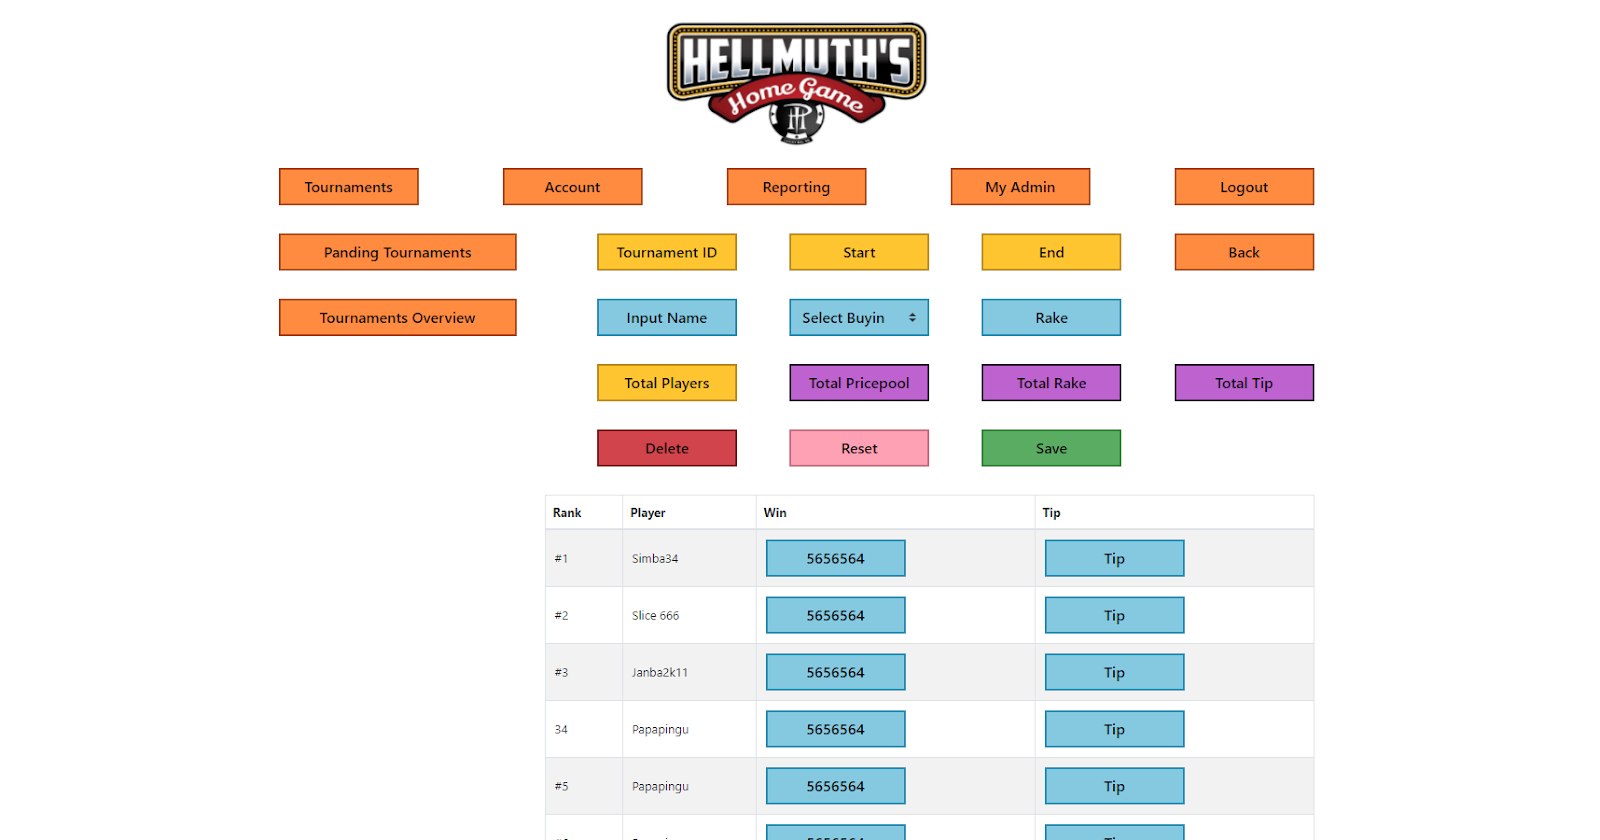 Hellmuth's